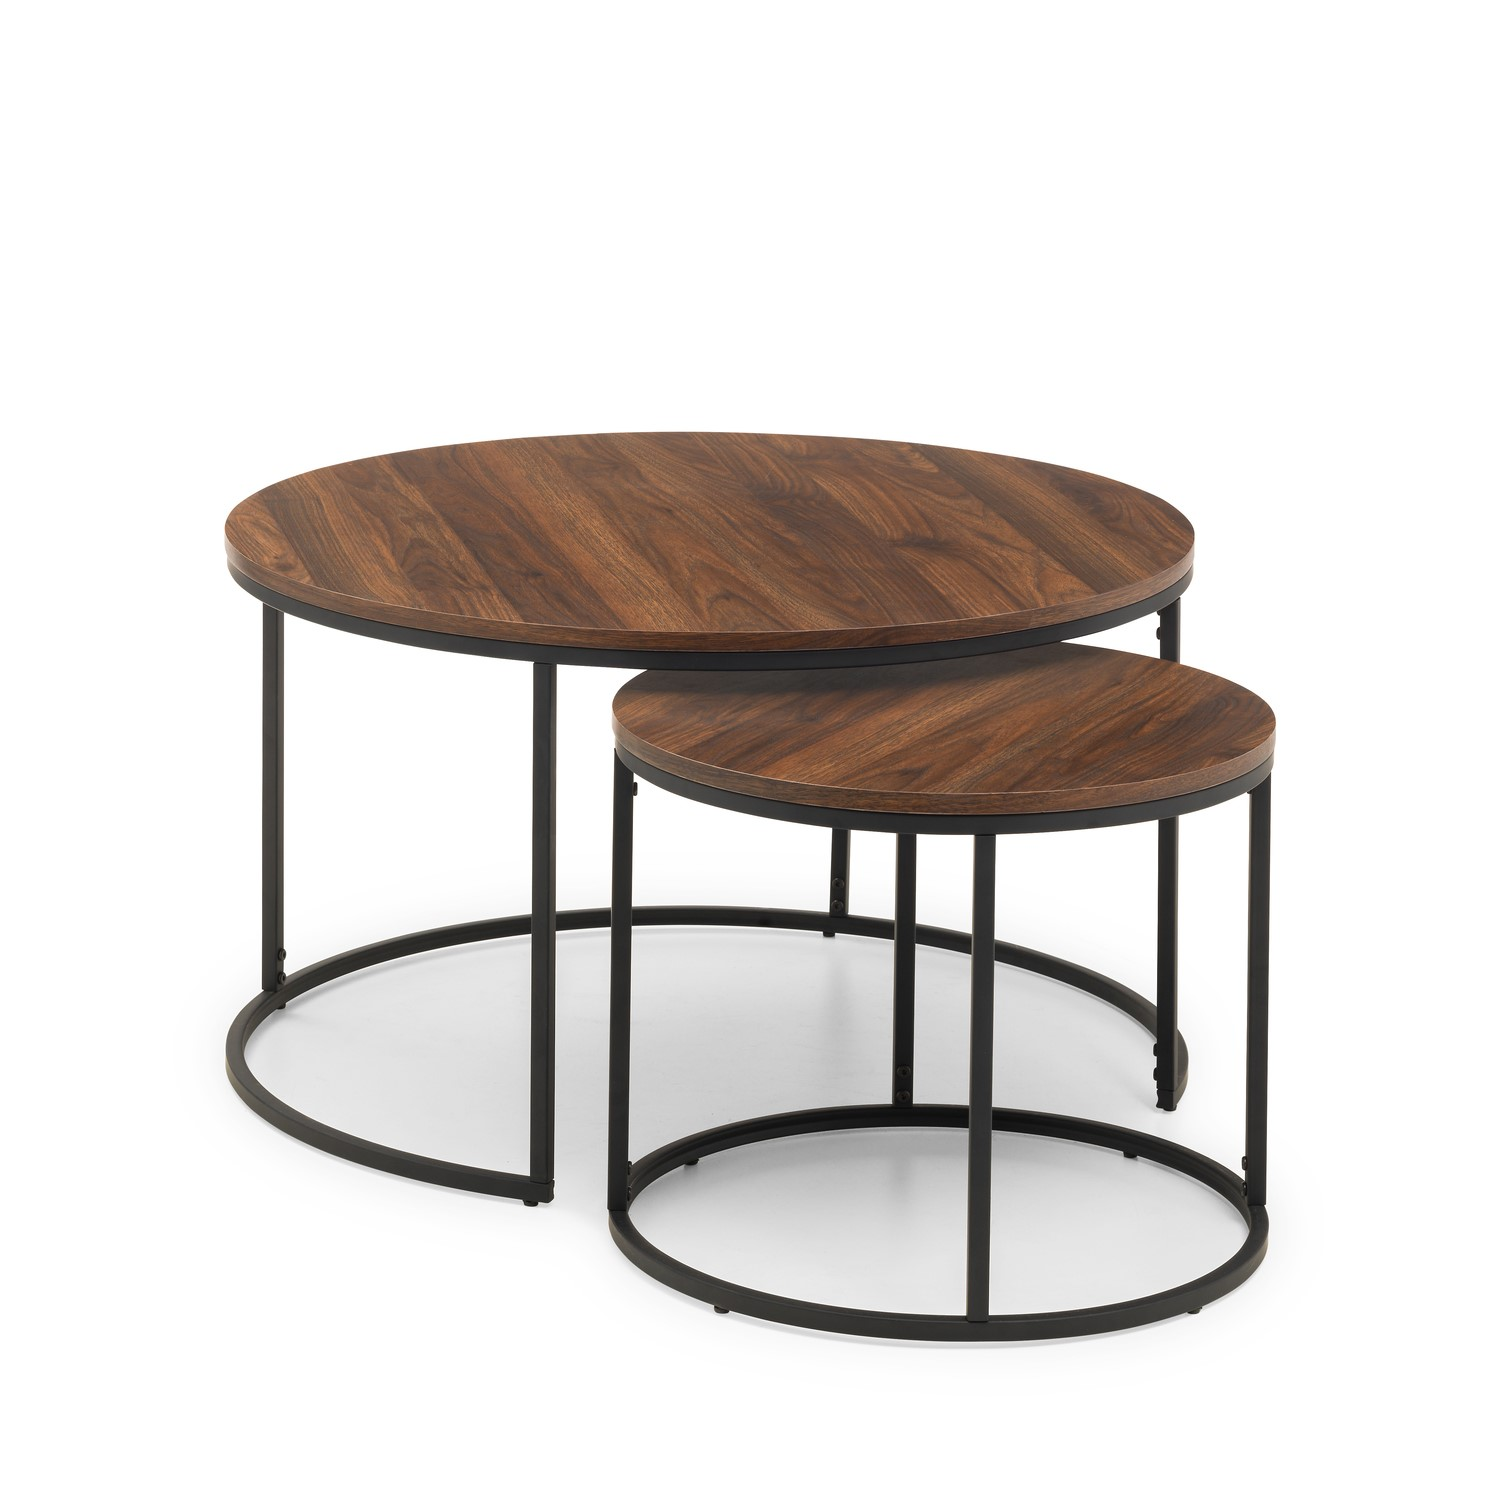 - Round Dark Wood Nest Of Coffee Tables With Black Metal Base